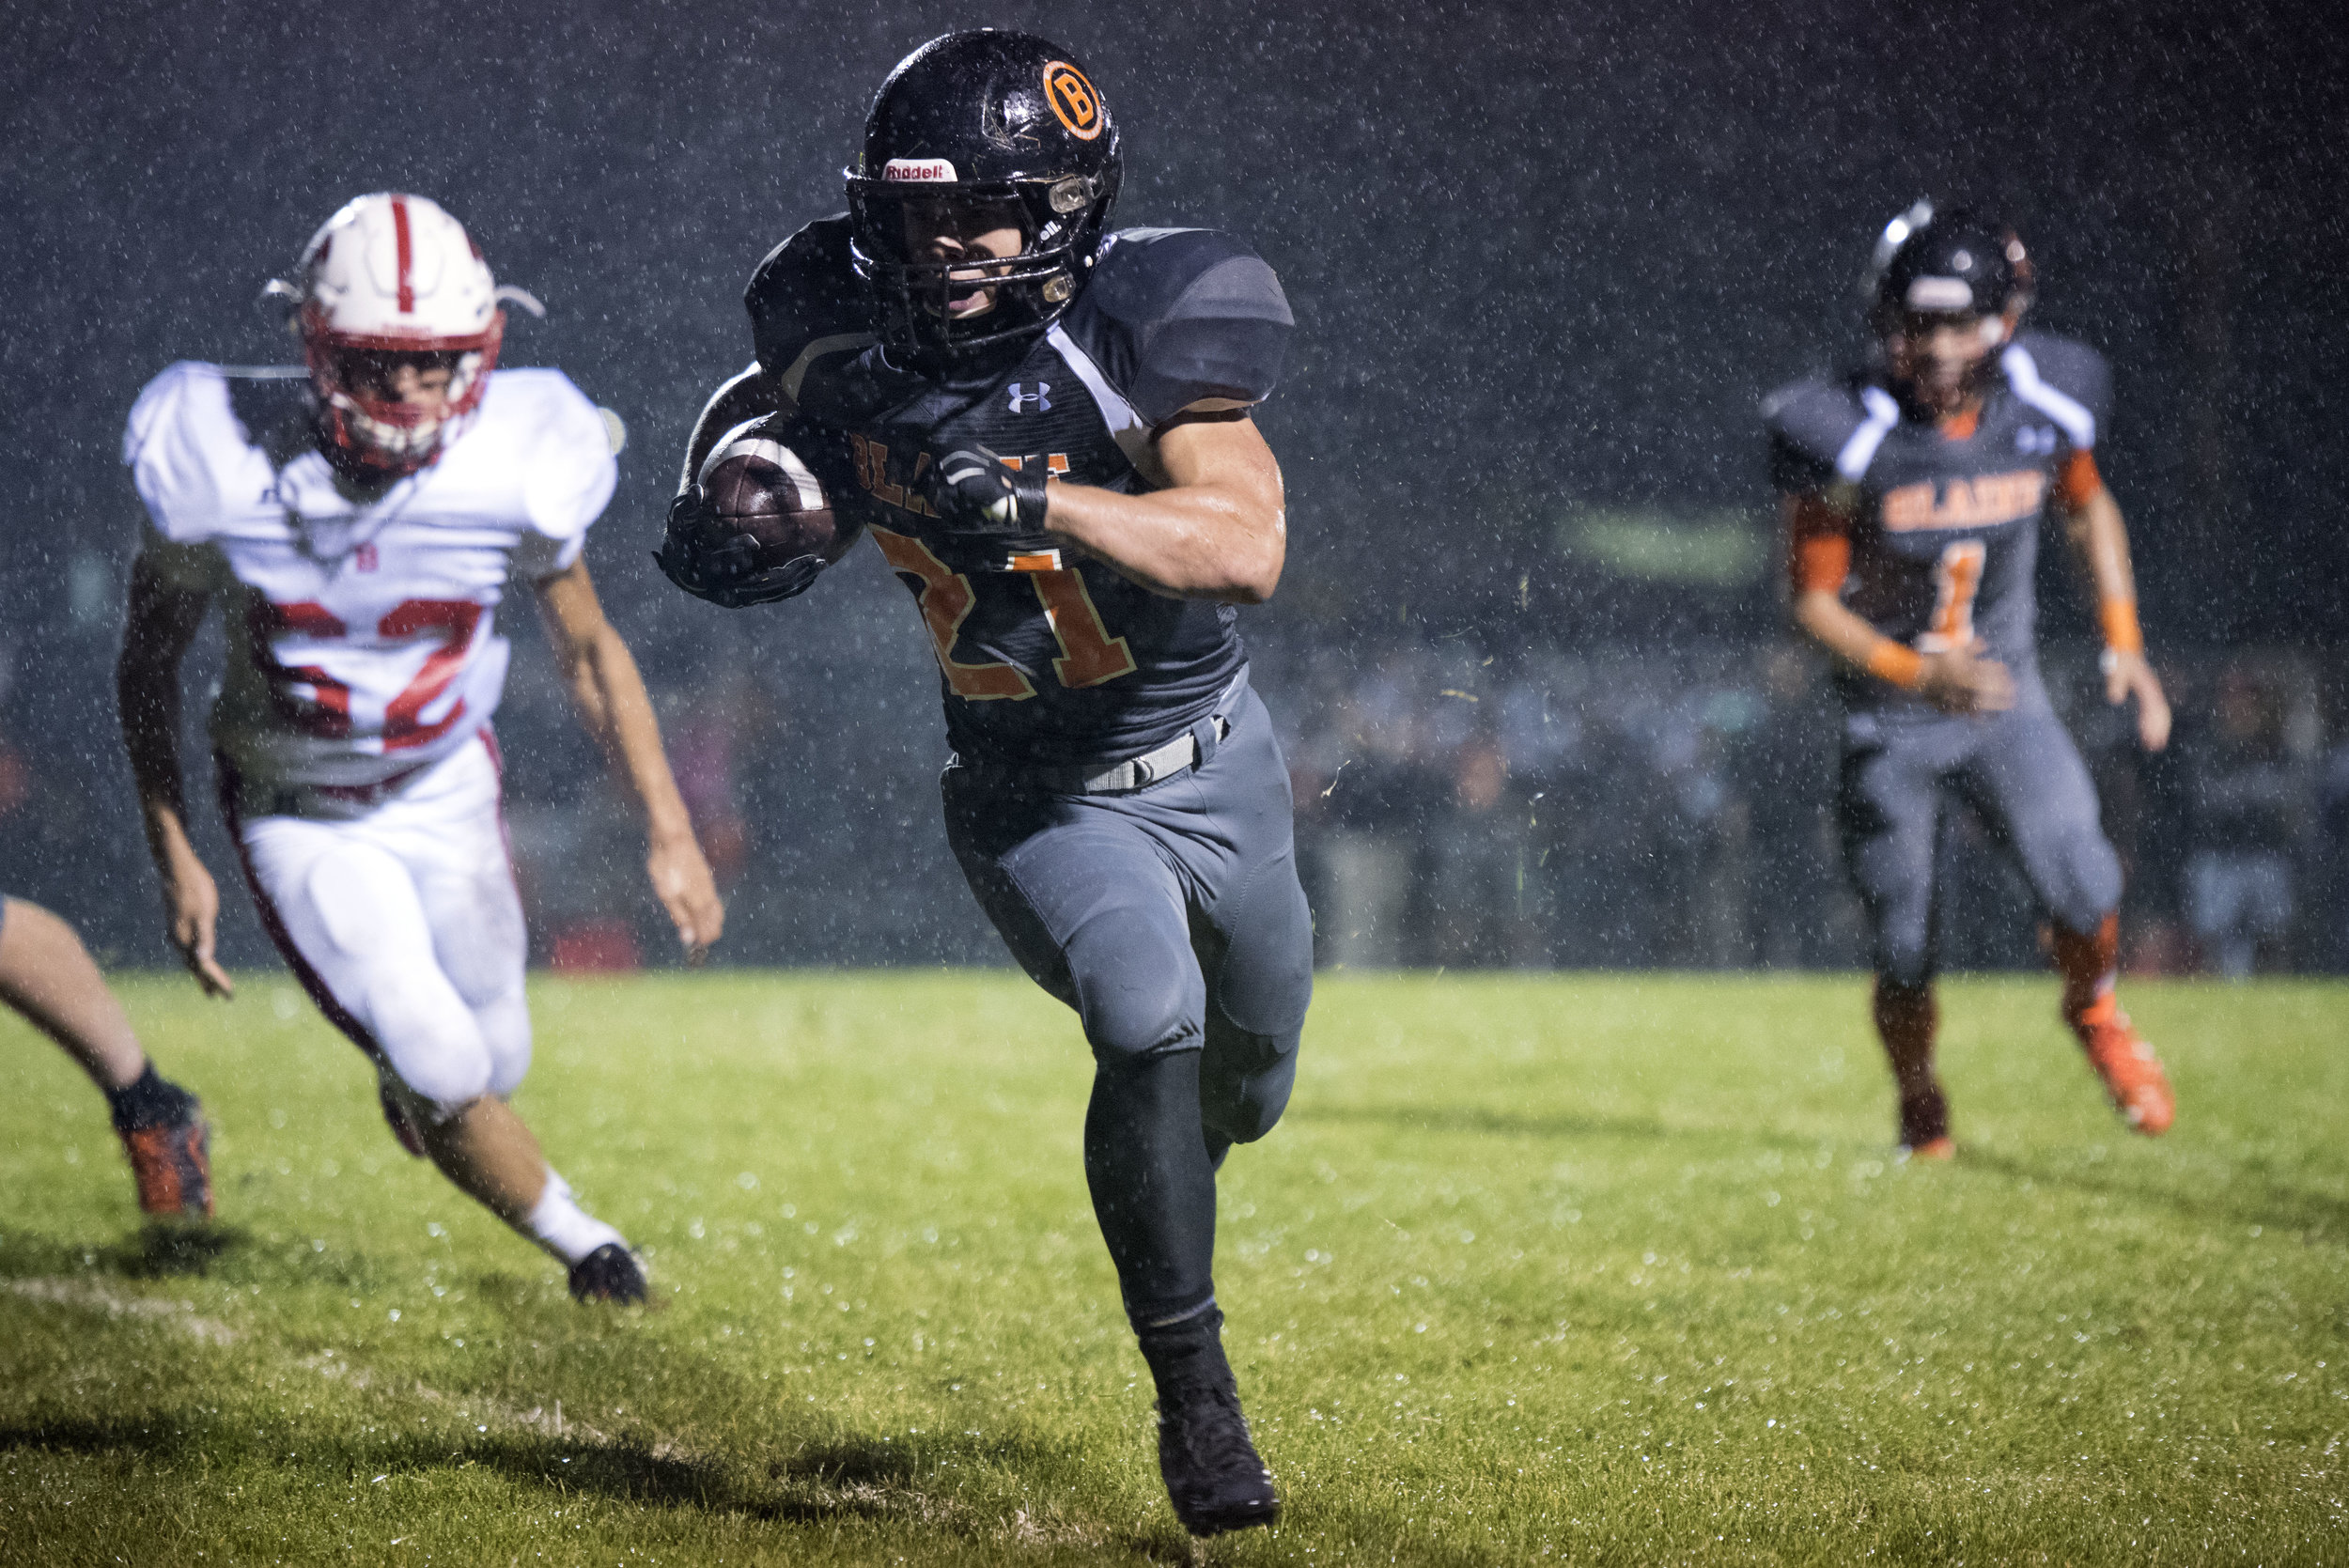 Riley Fritsch, senior running back for the Blaine Borderites, turns the corner as he heads for the endzone to score the winning touchdown with just over a minute left in the fourth quarter on Friday, Sept. 23, 2016 in Blaine, Wash.